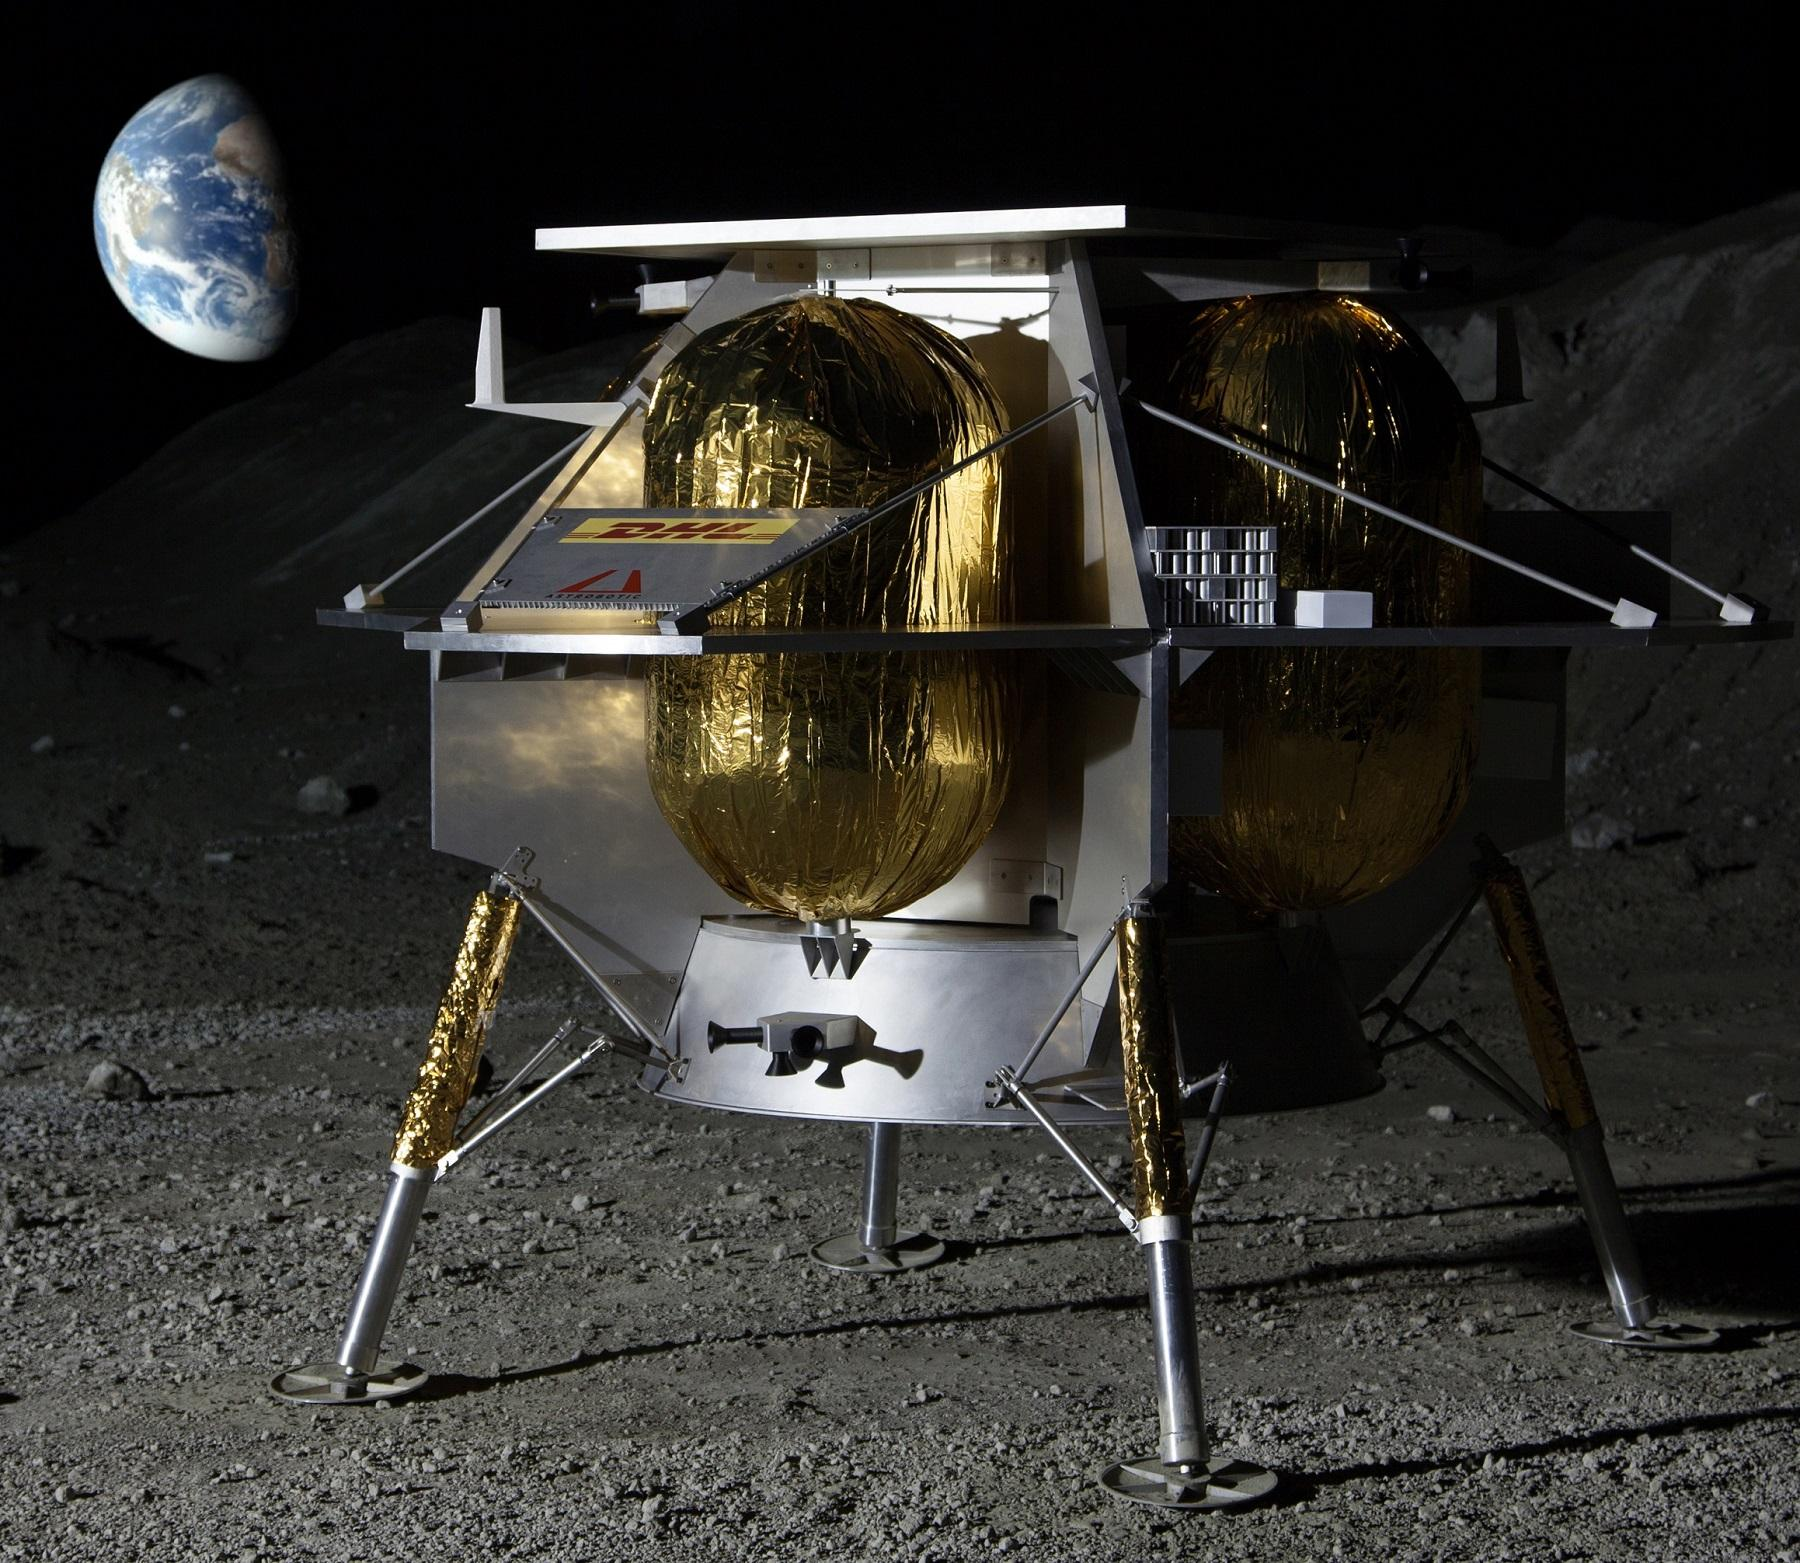 nasa commercial lunar payload services - HD1800×1563